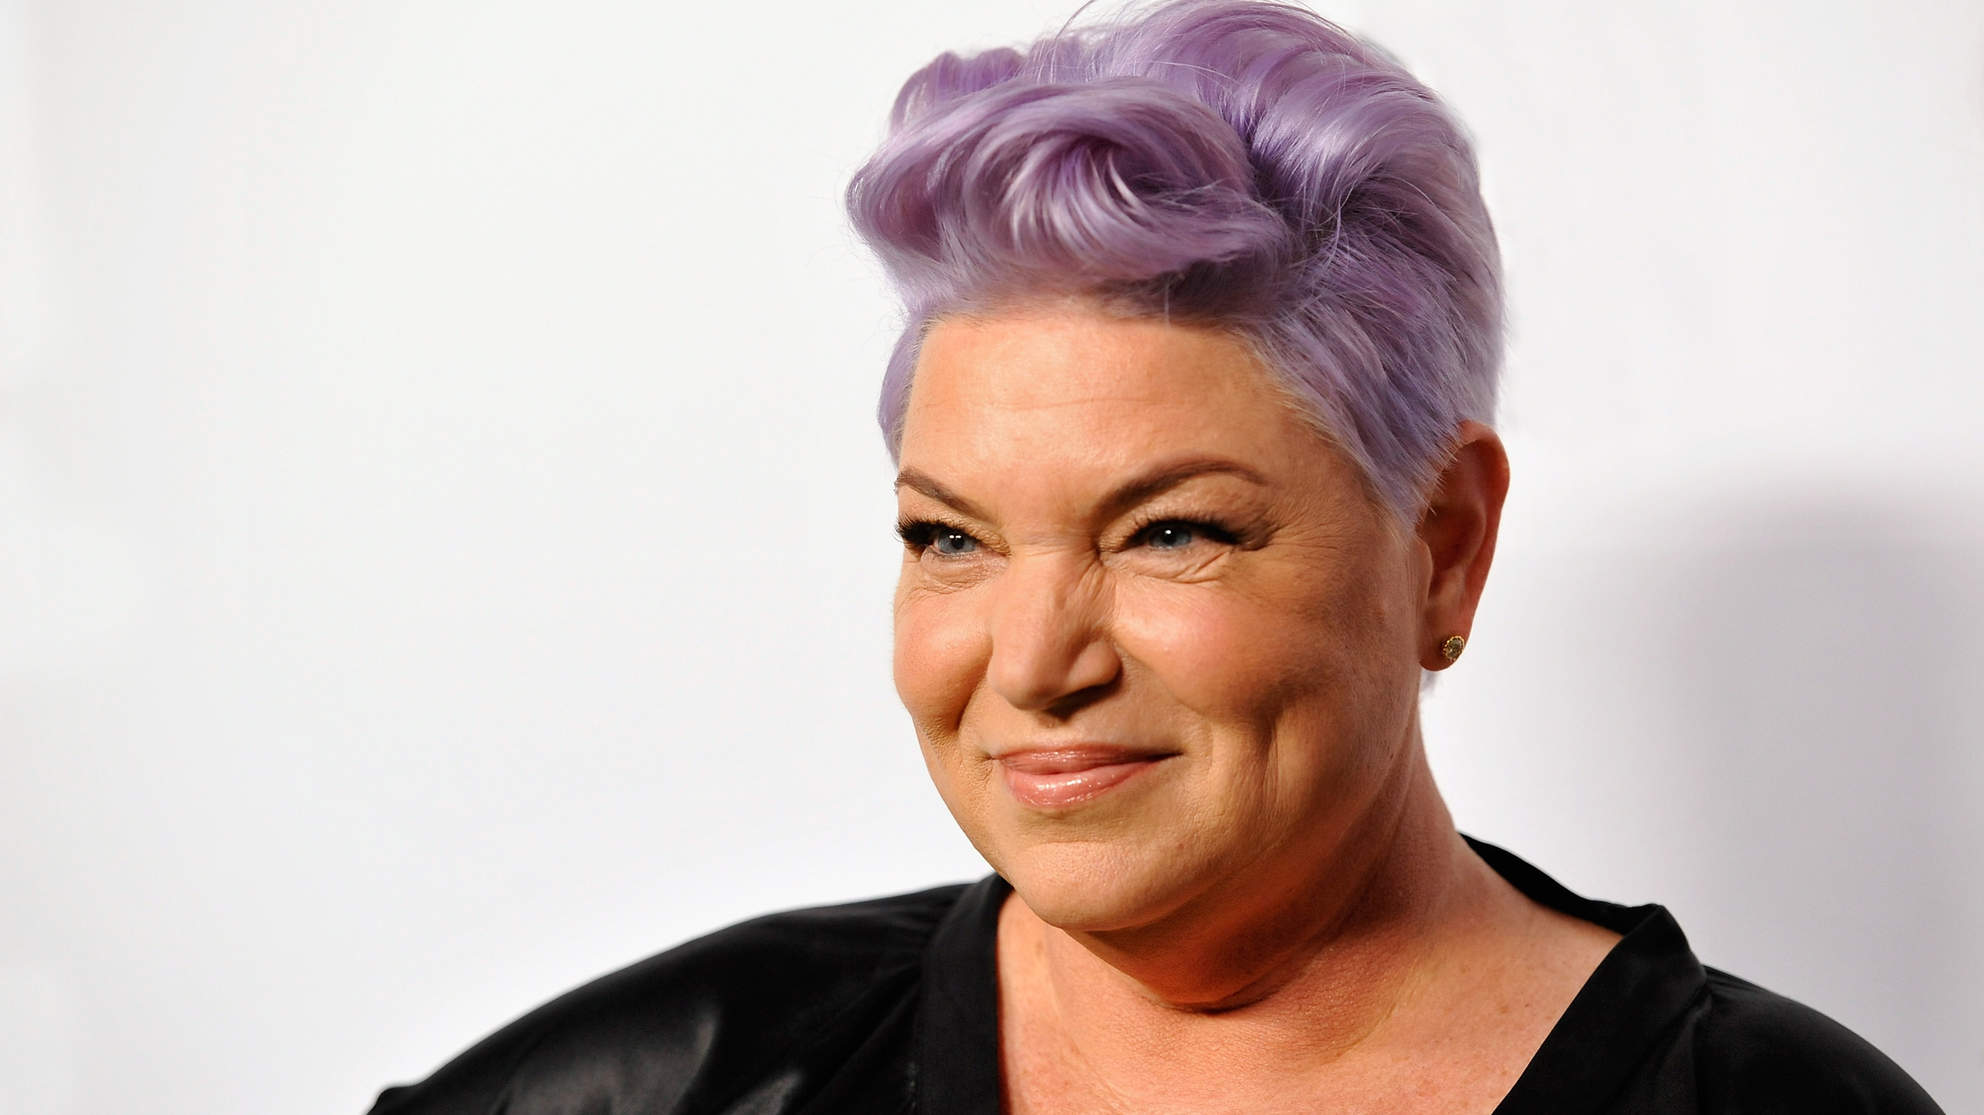 Facts of Life Star Mindy Cohn Reveals Five-Year Battle with Breast Cancer